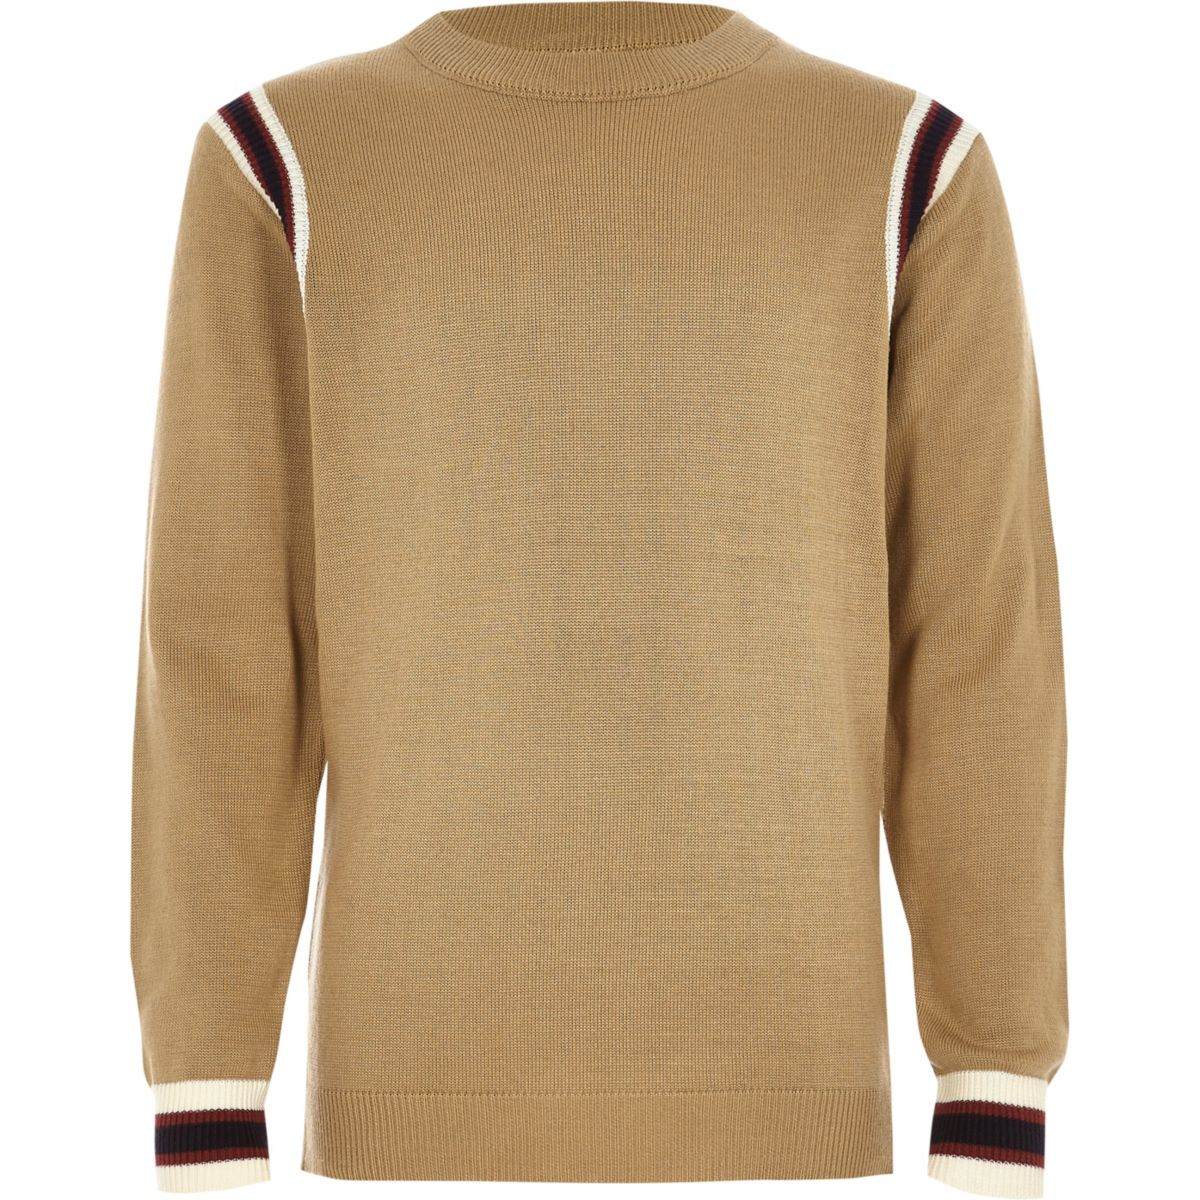 Boys brown striped contrast long sleeve top